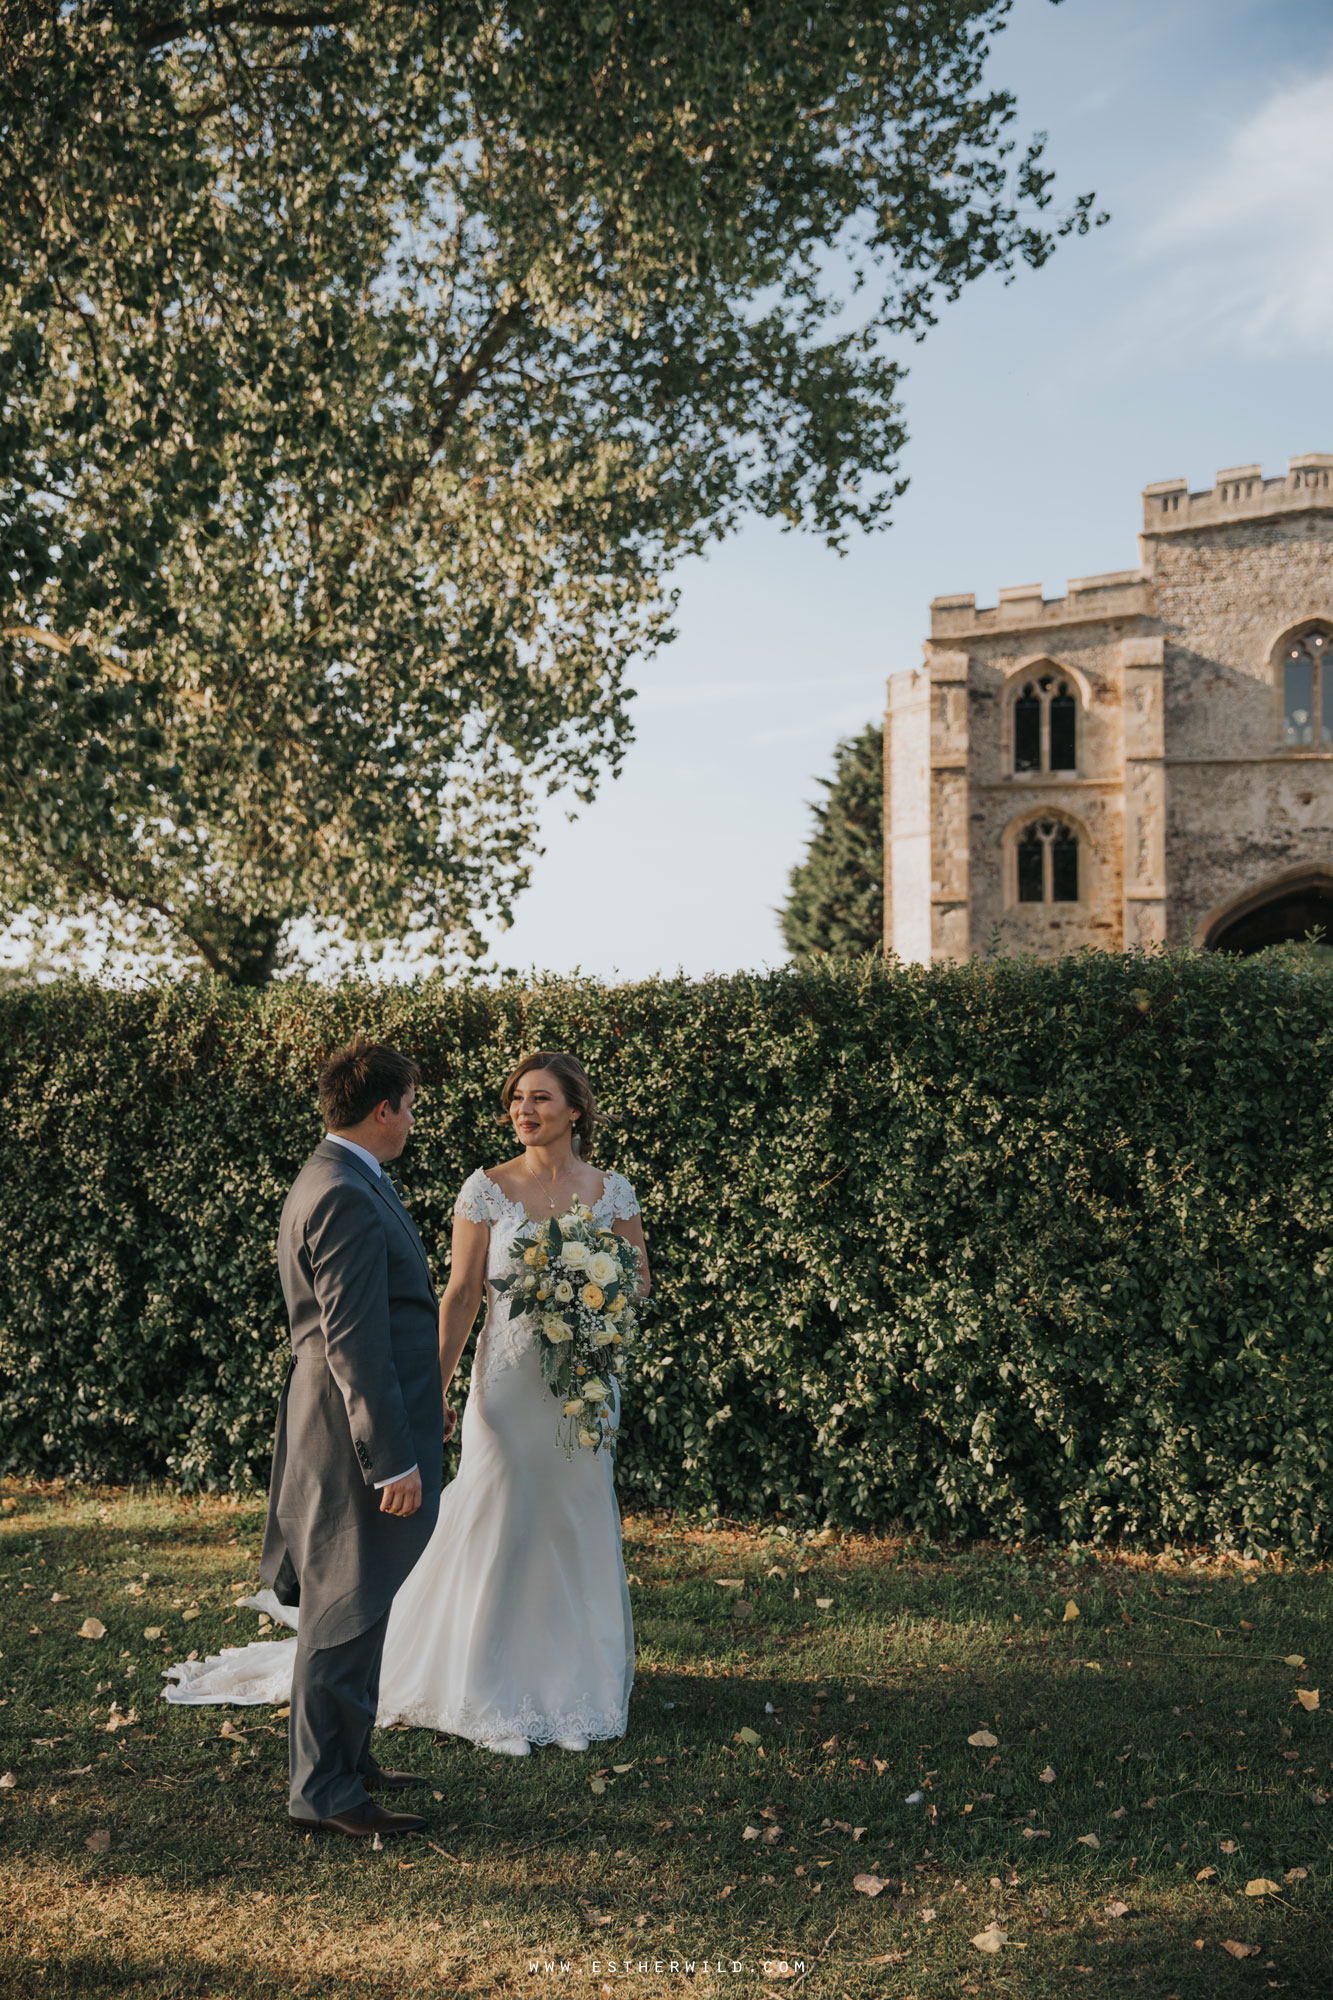 Pentney_Abbey_Wedding_Kings_Lynn_Norfolk_Esther_Wild_Wedding_Photography_IMG_1257.jpg